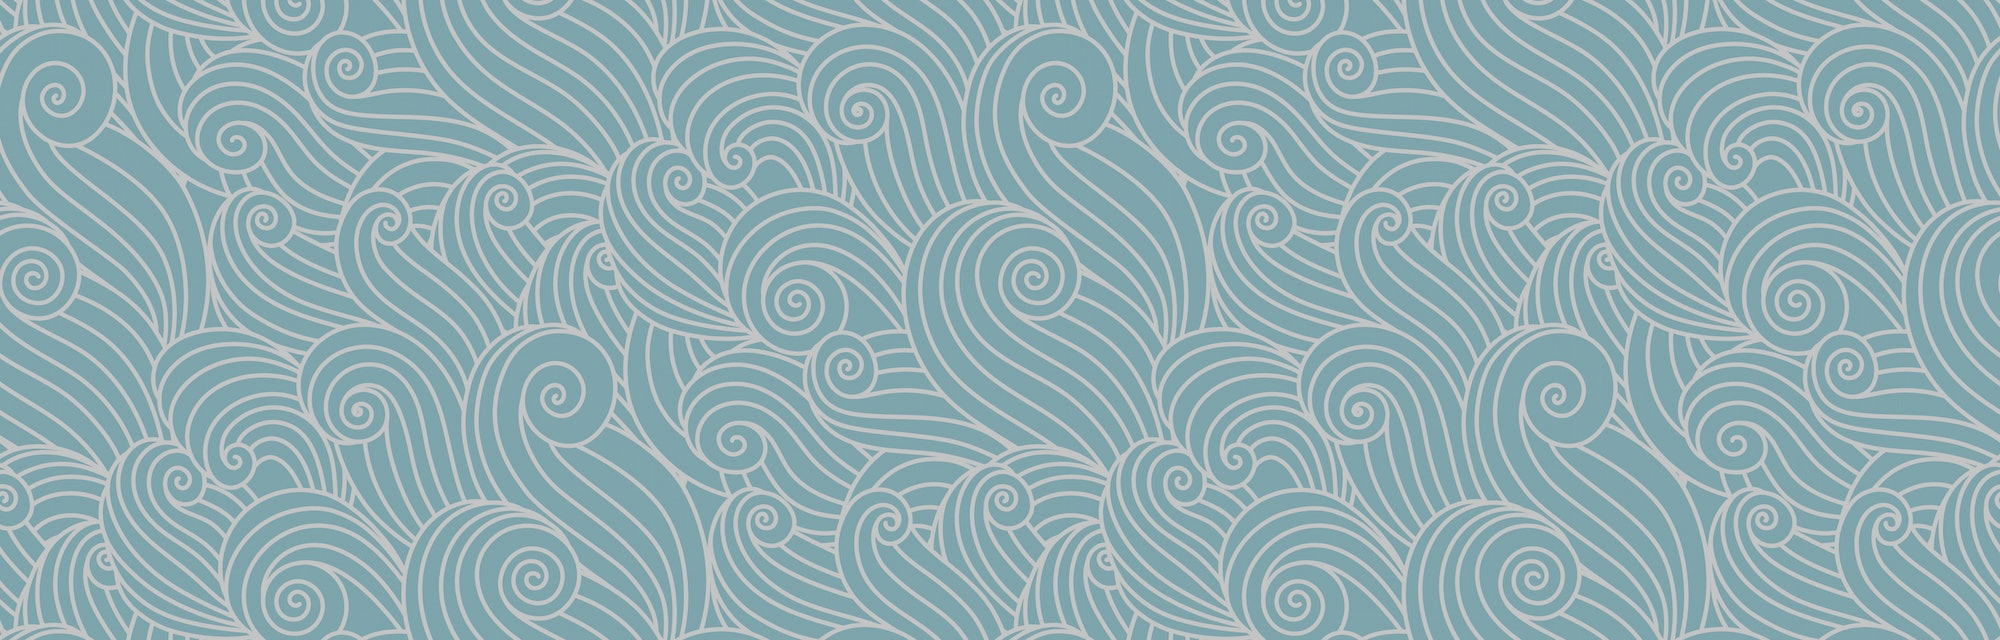 Abstract ocean waves background. Organic shapes wavy wallpaper. Vector seamless nautical sea tides pattern.